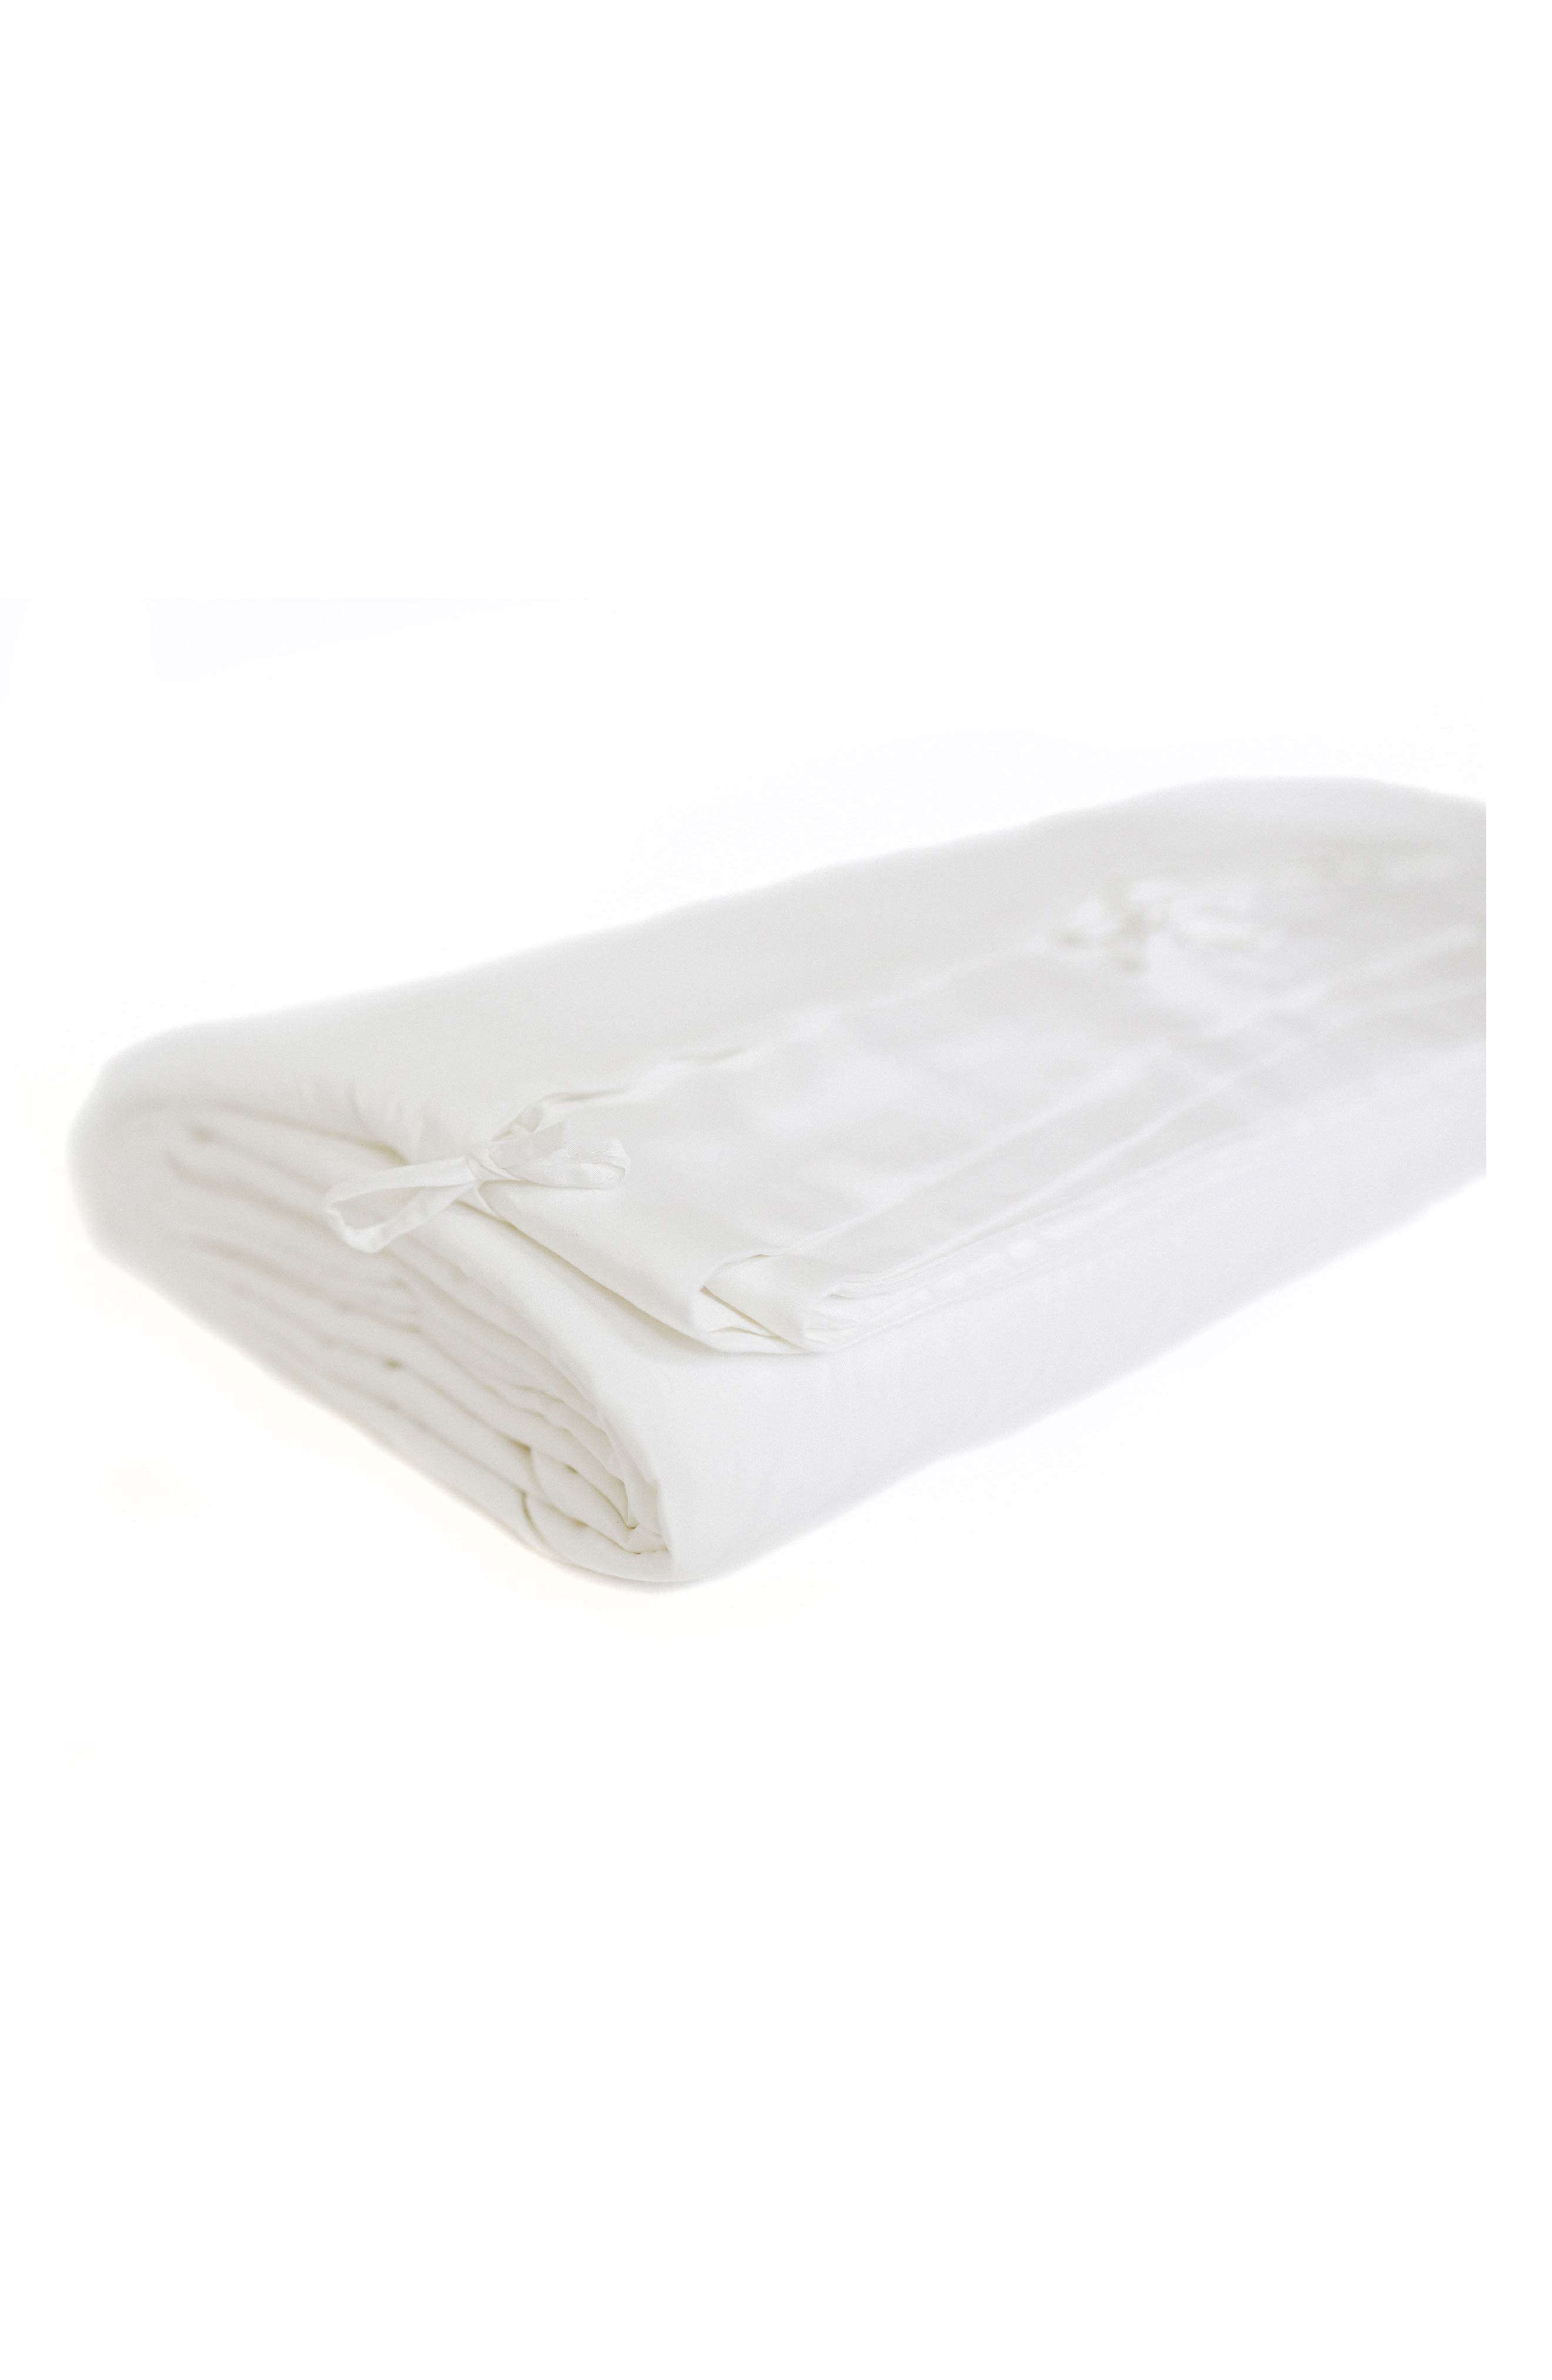 Image of Cozy Earth Viscose From Bamboo Duvet Cover - King